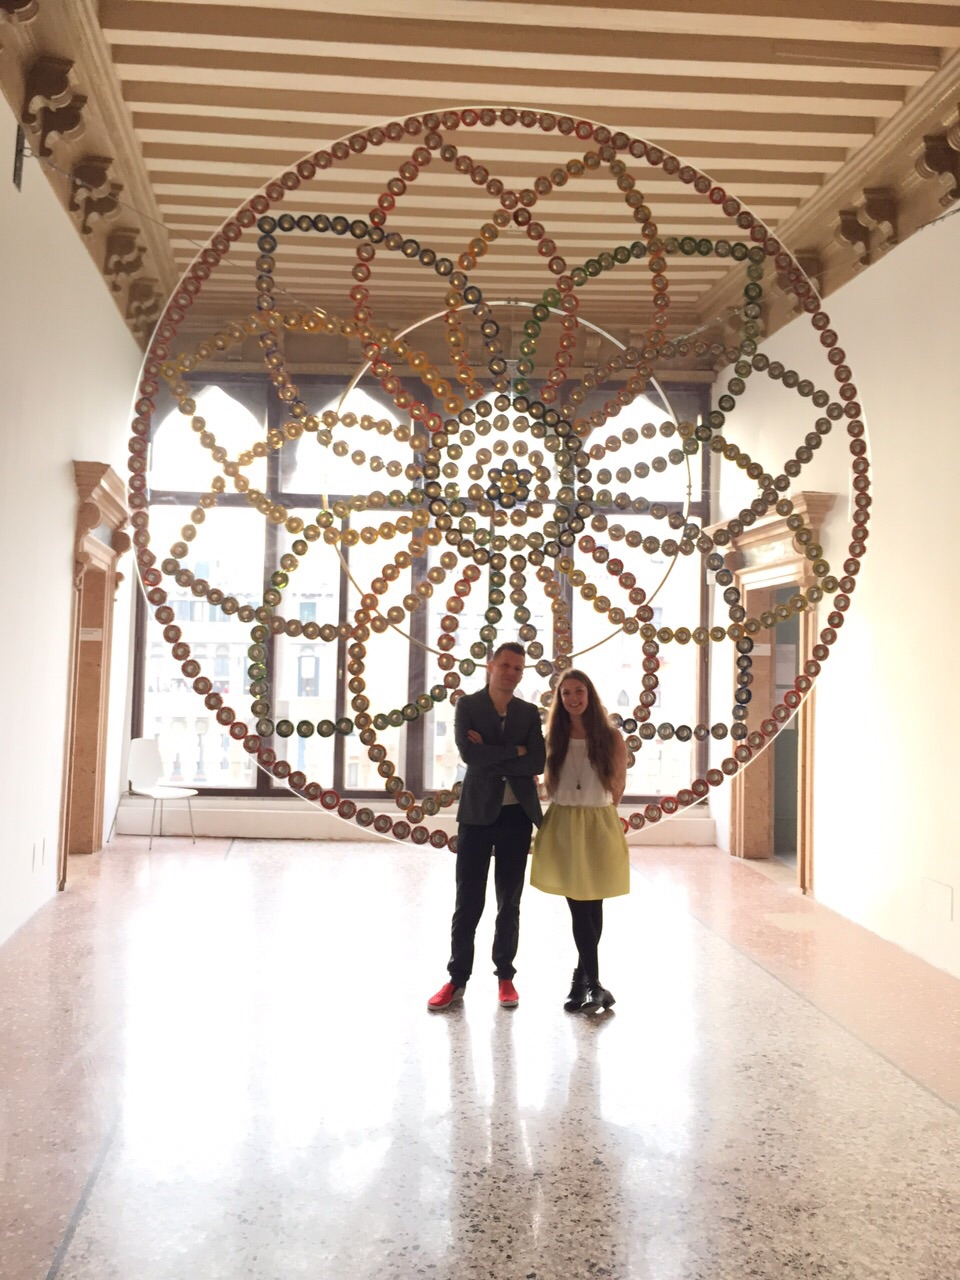 Mircea Cantor & Dea Vanagan, with Mircea's work, Rosace in Venice